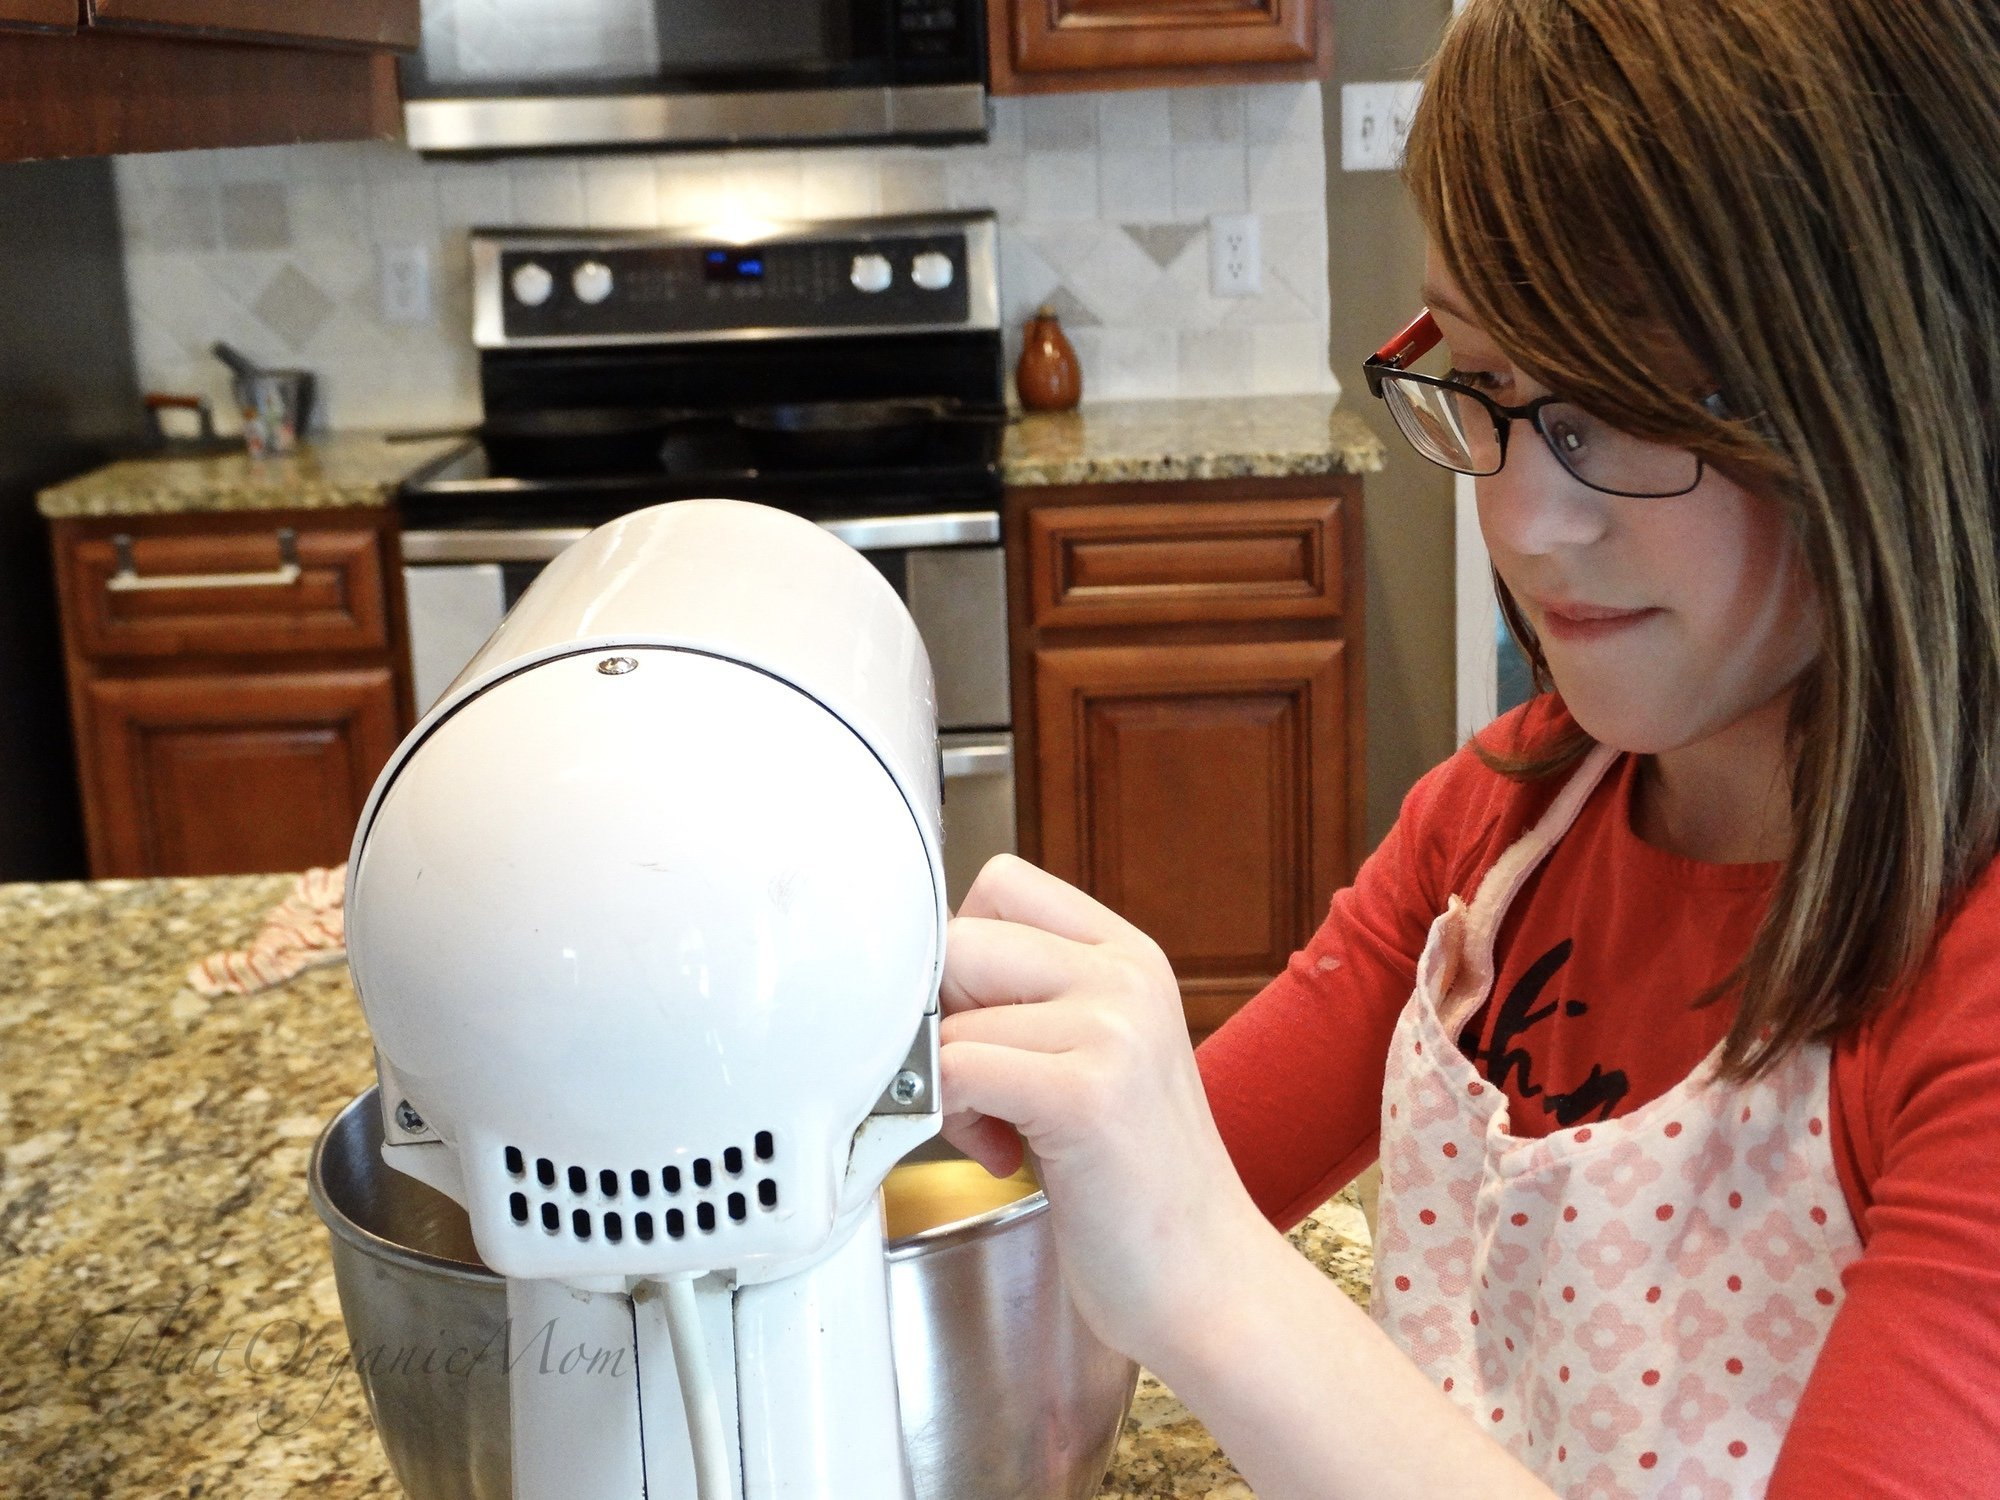 What can kids do to help in the kitchen from birth through the teen years